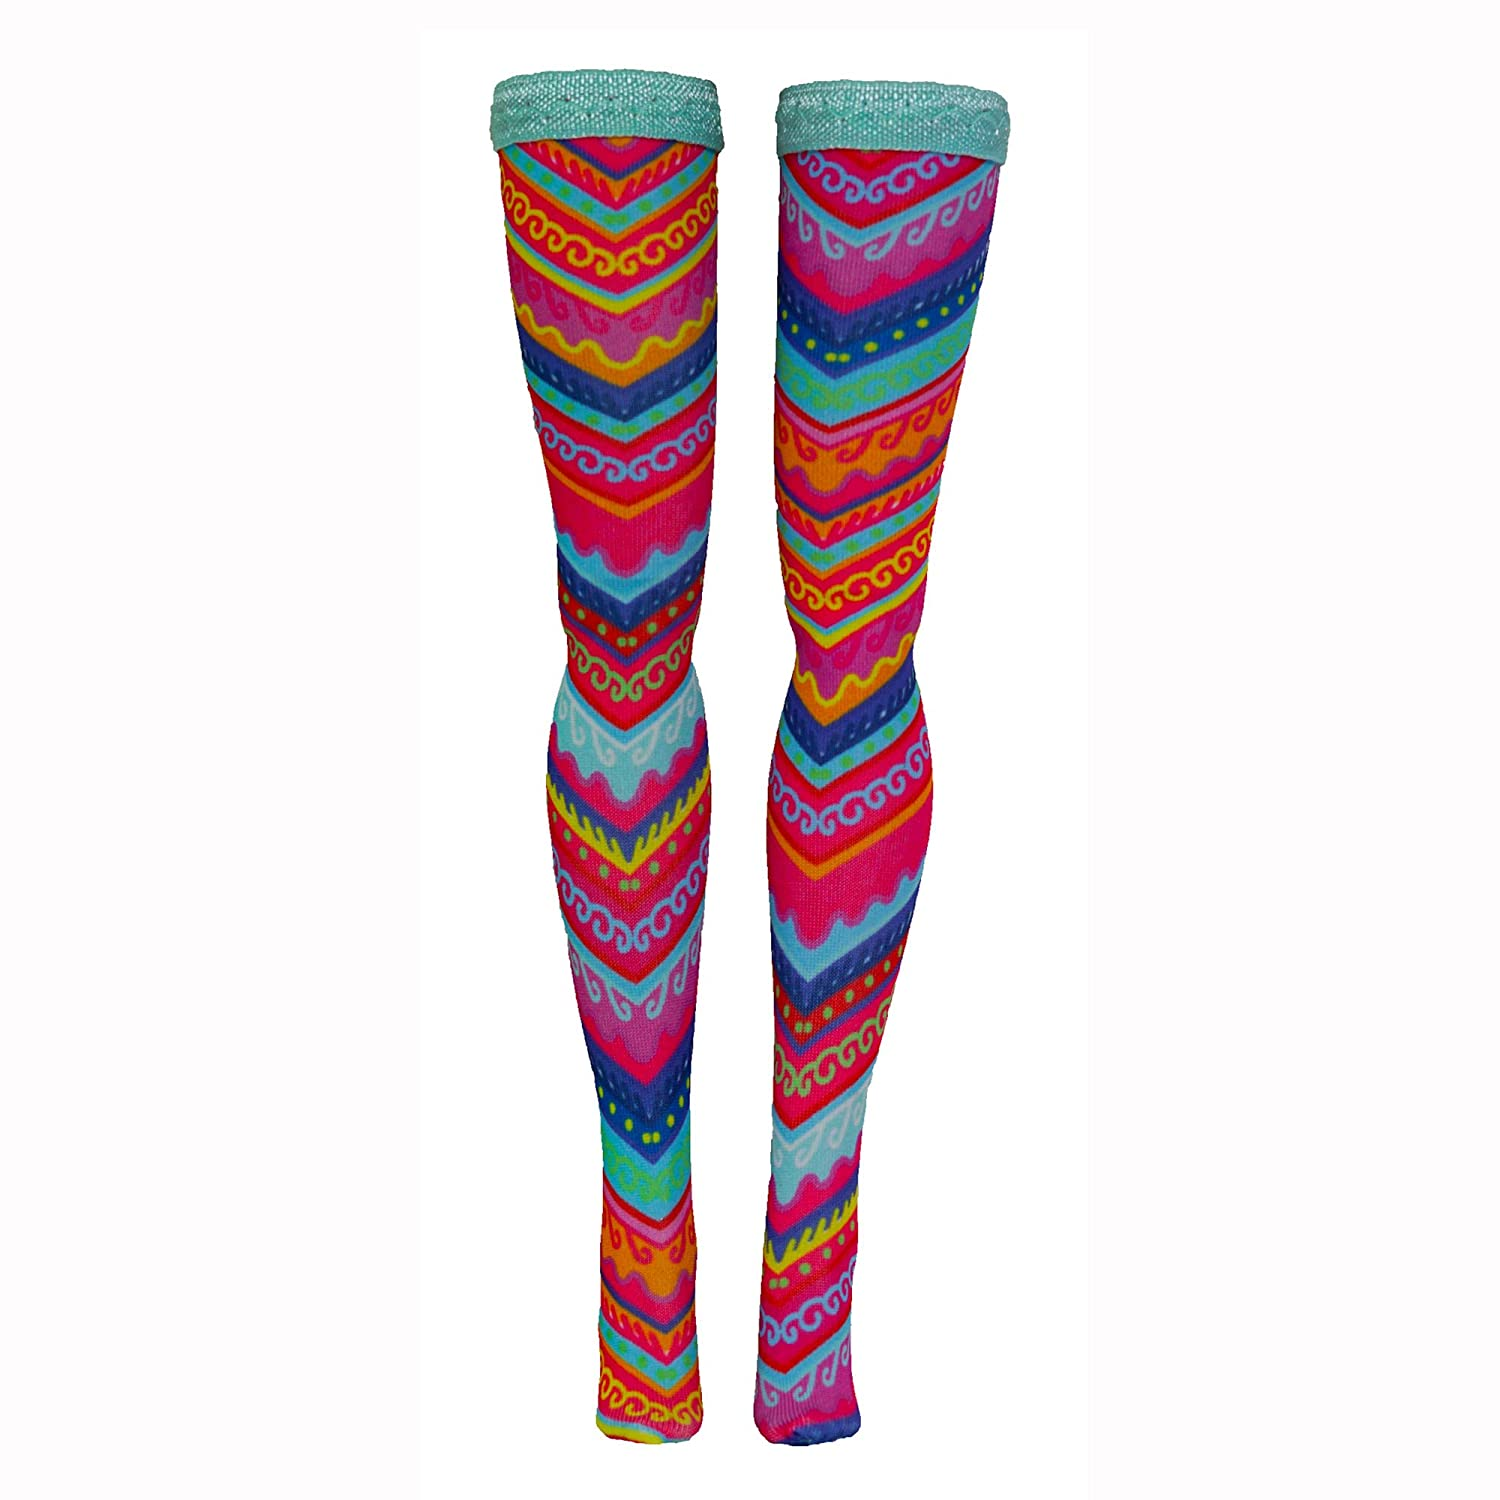 Silkstone Tall Skipper Prints 1 Doll Stockings for Barbie Curvy Petite Made to Move Francie